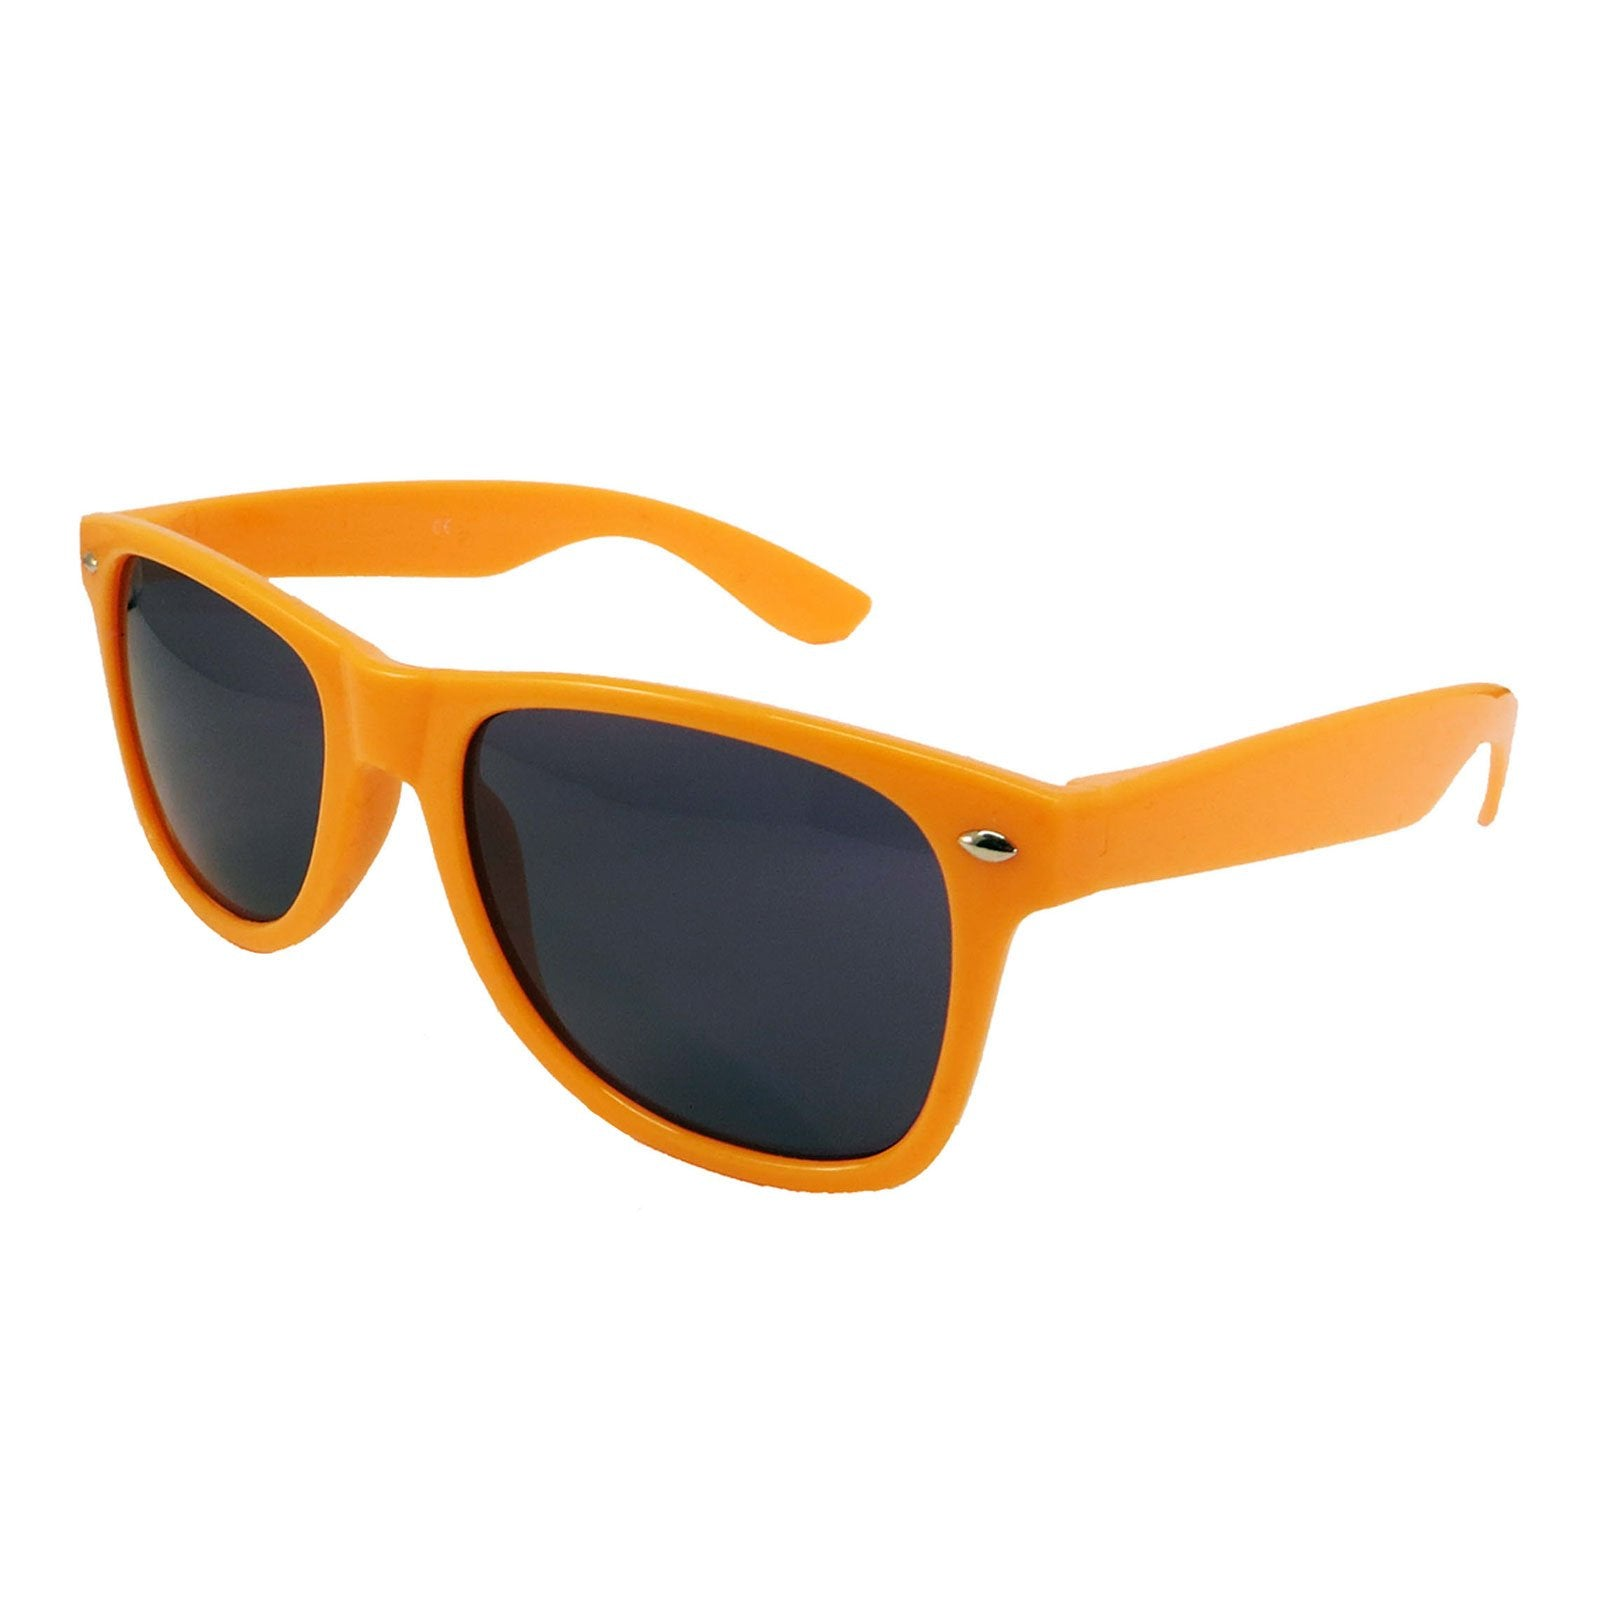 Wholesale Kids Classic Sunglasses - Light Orange Frame, Black Lens